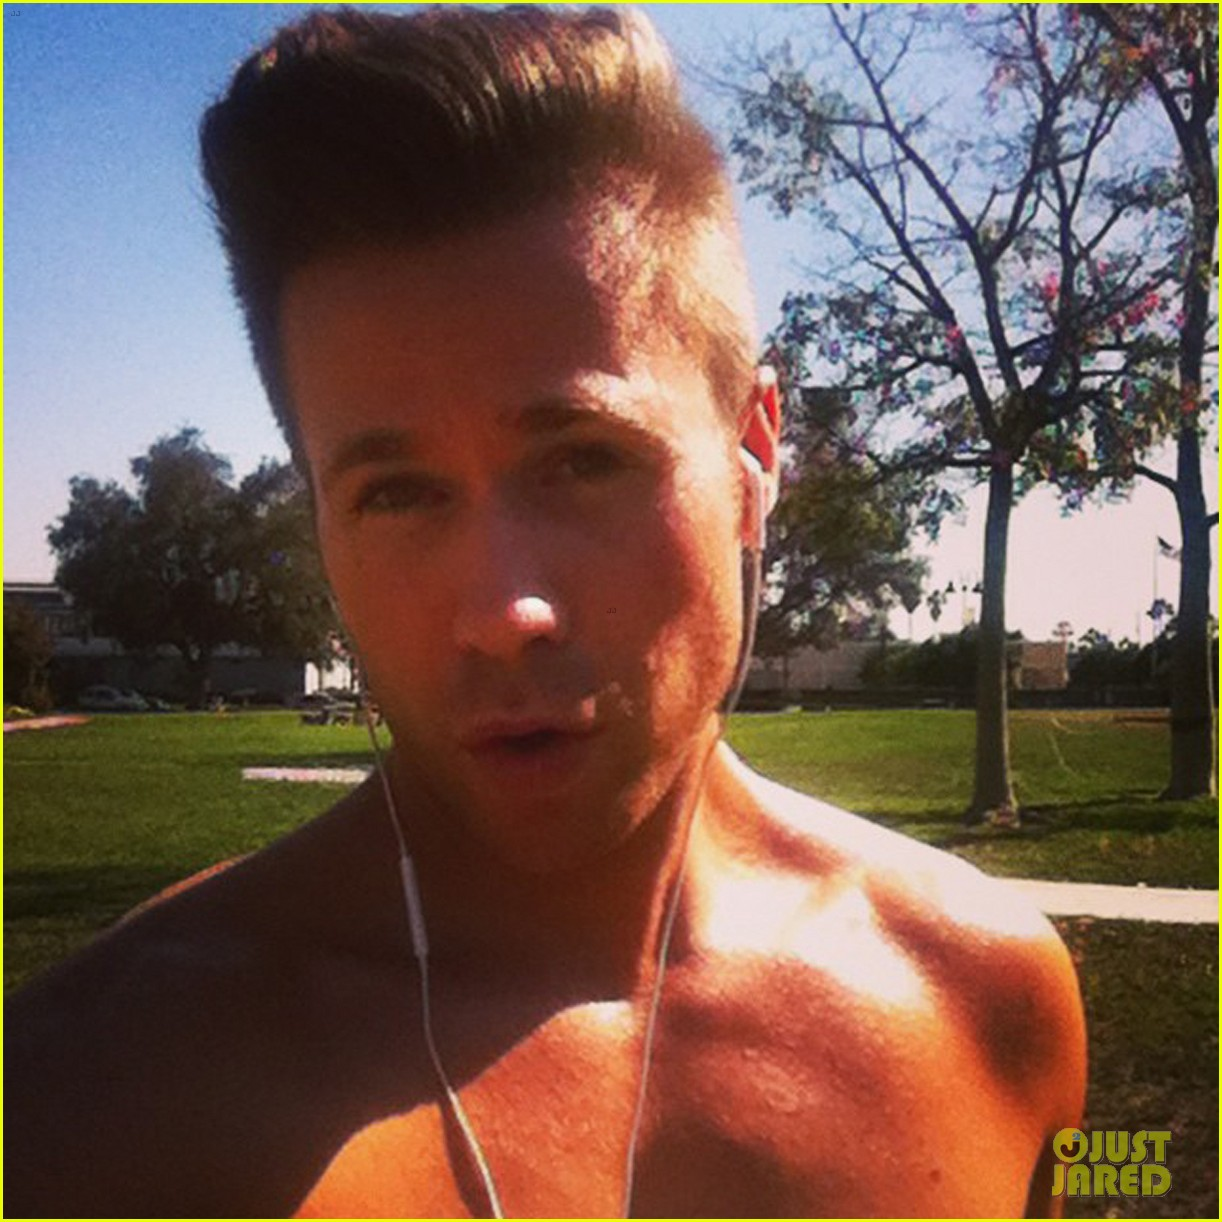 ashley parker angel soundtrack to your lifeashley parker angel let u go, ashley parker angel instagram, ashley parker angel shades of blue, ashley parker angel, ashley parker angel son, ashley parker angel twitter, ashley parker angel soundtrack to your life, ashley parker angel let you go, ashley parker angel where did you go lyrics, ashley parker angel let you go lyrics, ashley parker angel night changes, ashley parker angel gay, ashley parker angel wicked, ashley parker angel net worth, ashley parker angel girlfriend, ashley parker angel tiffany lynn rowe, ashley parker angel american horror story, ashley parker angel songs, ashley parker angel divorce, ashley parker angel out magazine